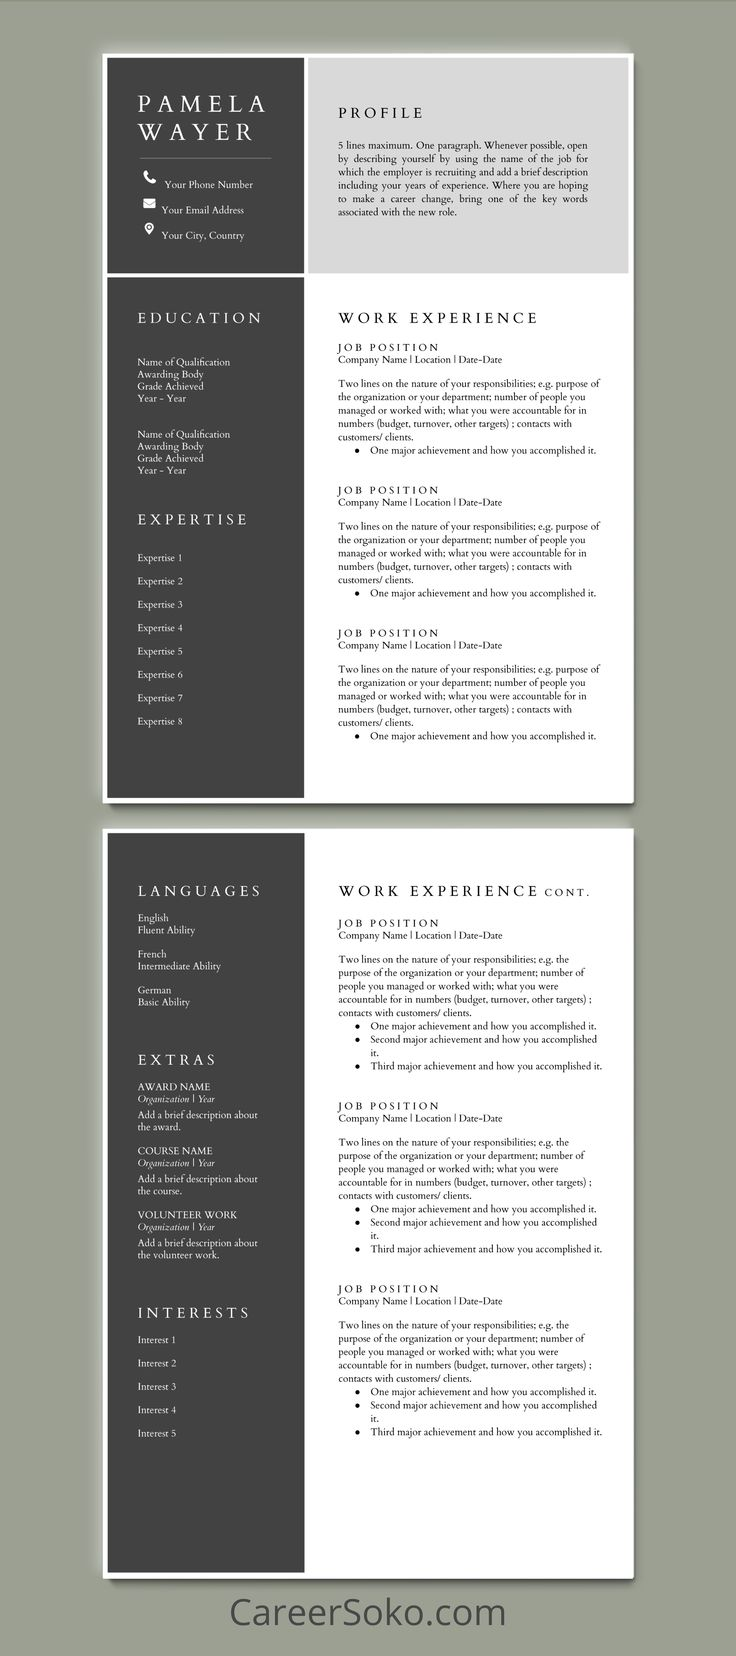 Resume Template Google Docs, Resume with Cover Letter